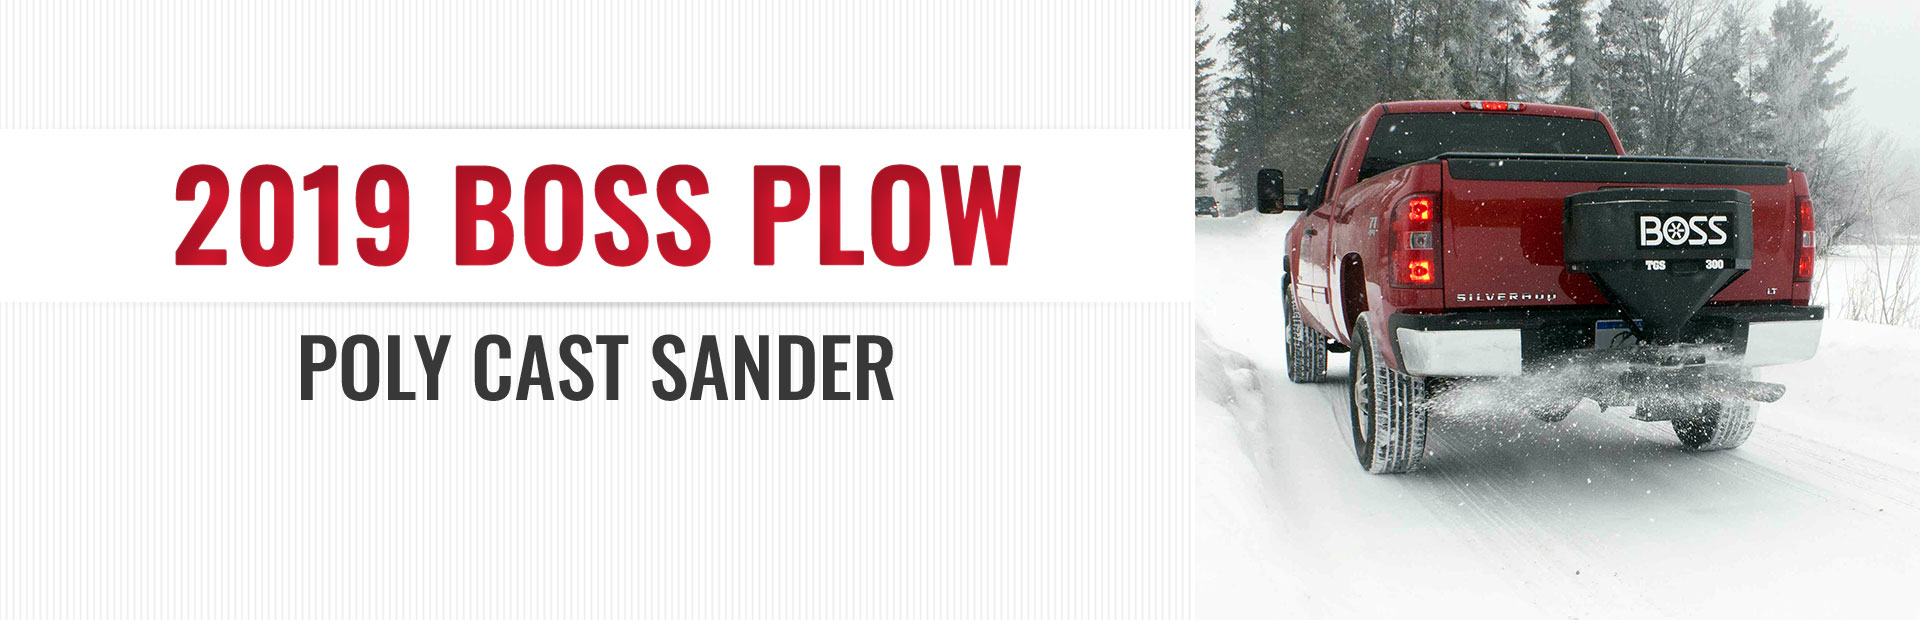 2019 Boss Plow with a poly cast sander. Click here to view the models.